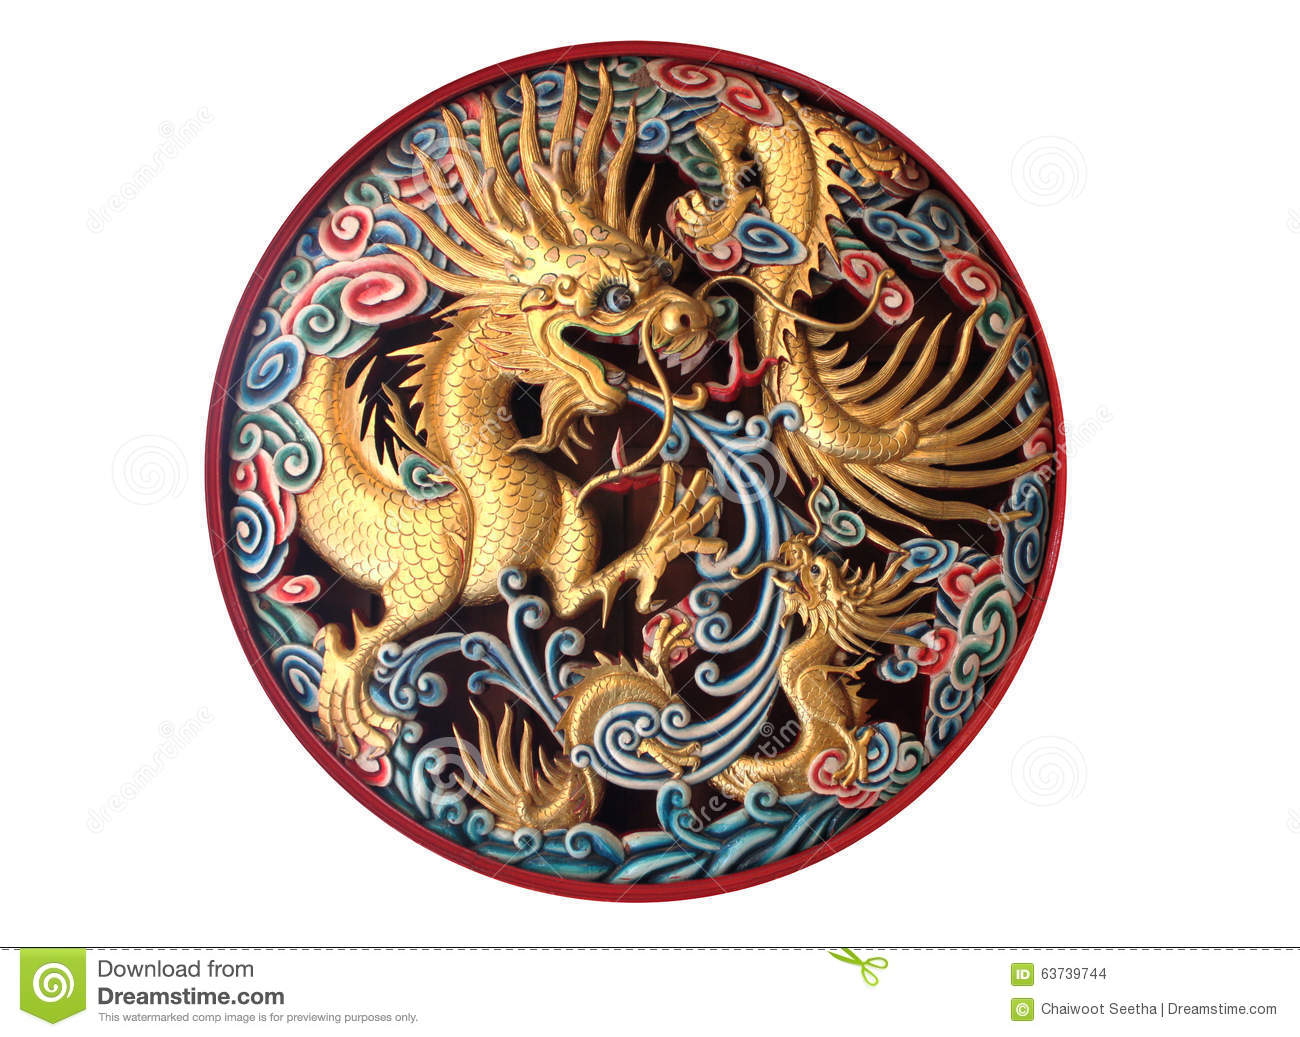 dragon wood carvings stock photo image of design decoration 63739744 rh dreamstime com  dragon carving template